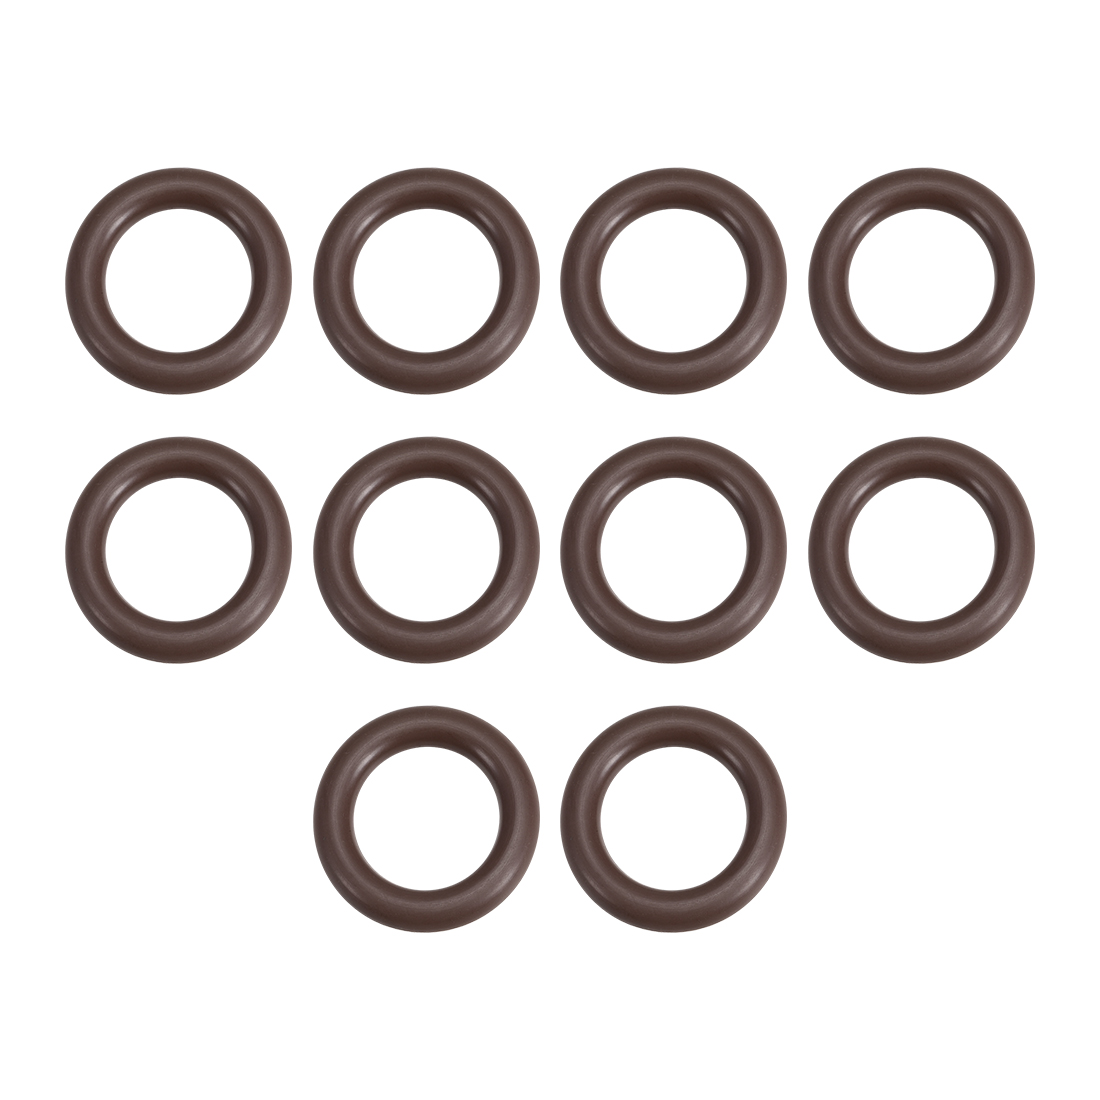 uxcell 10 Pcs Fluororubber Gasket Sanitary Tri Clamp Washer 29mm x 18.4mm O-Ring